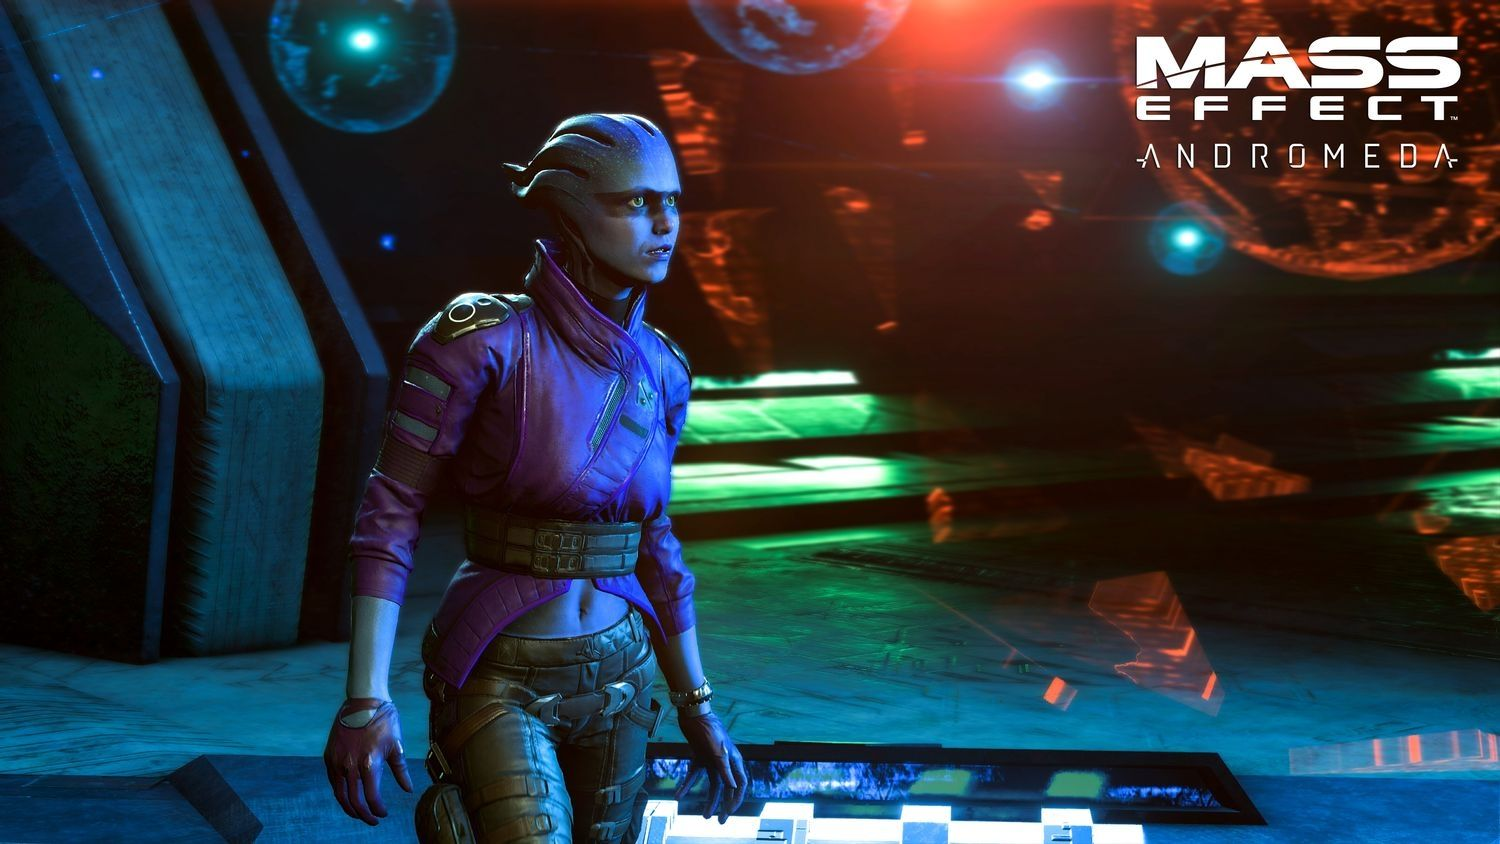 Mass Effect Andromeda (Xbox One) - 3